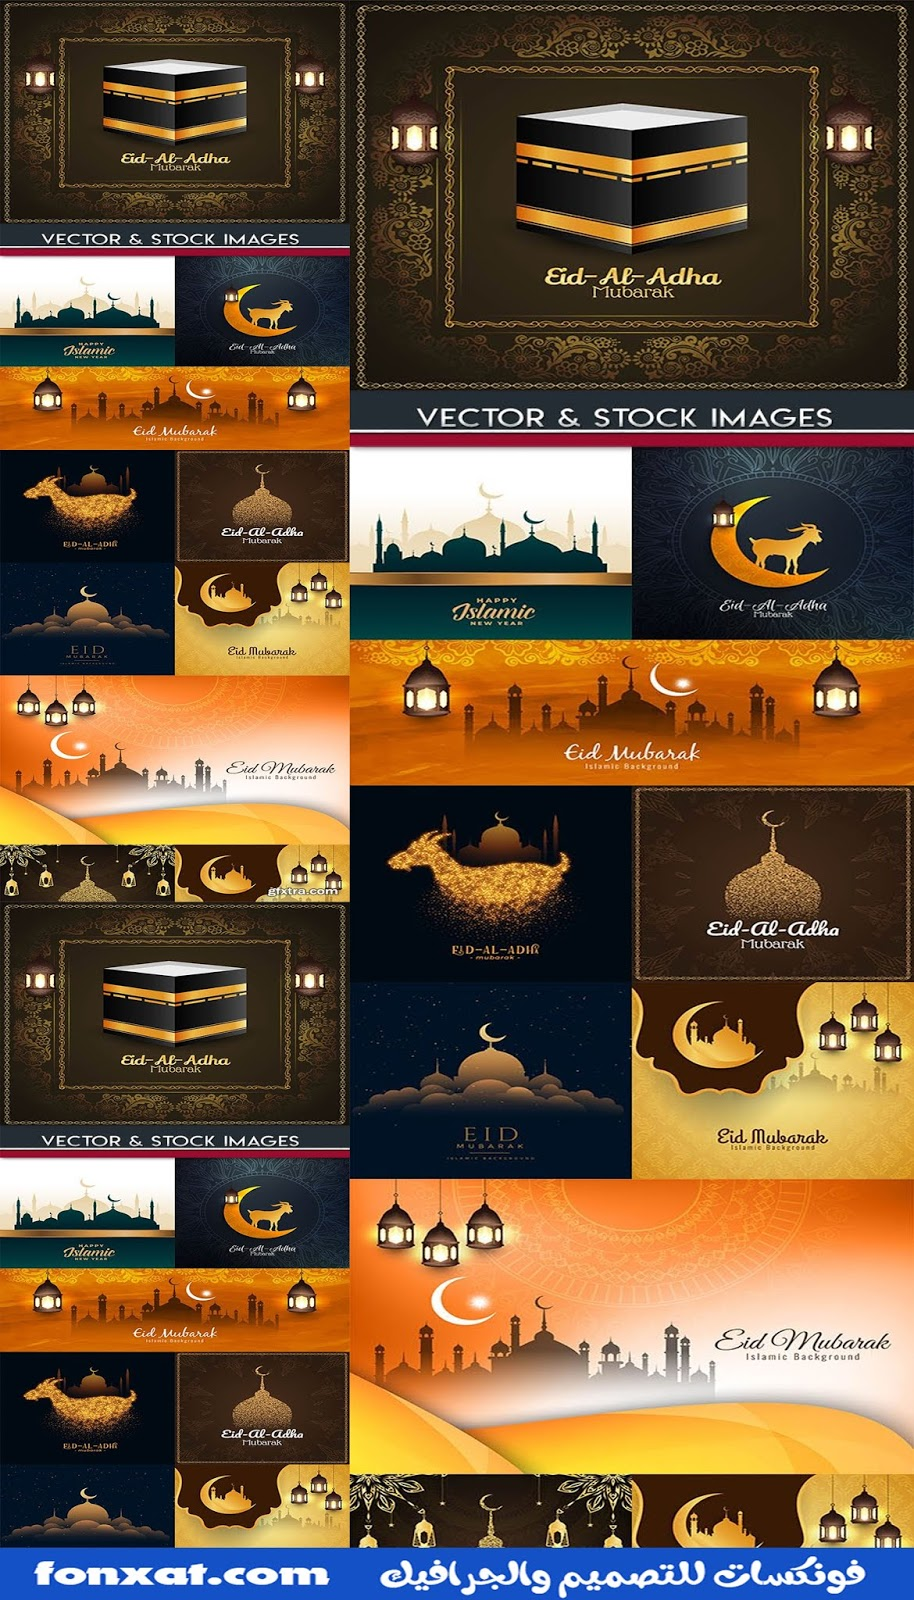 Victor designs with the highest quality Ramadan 2020 very professional and beautiful